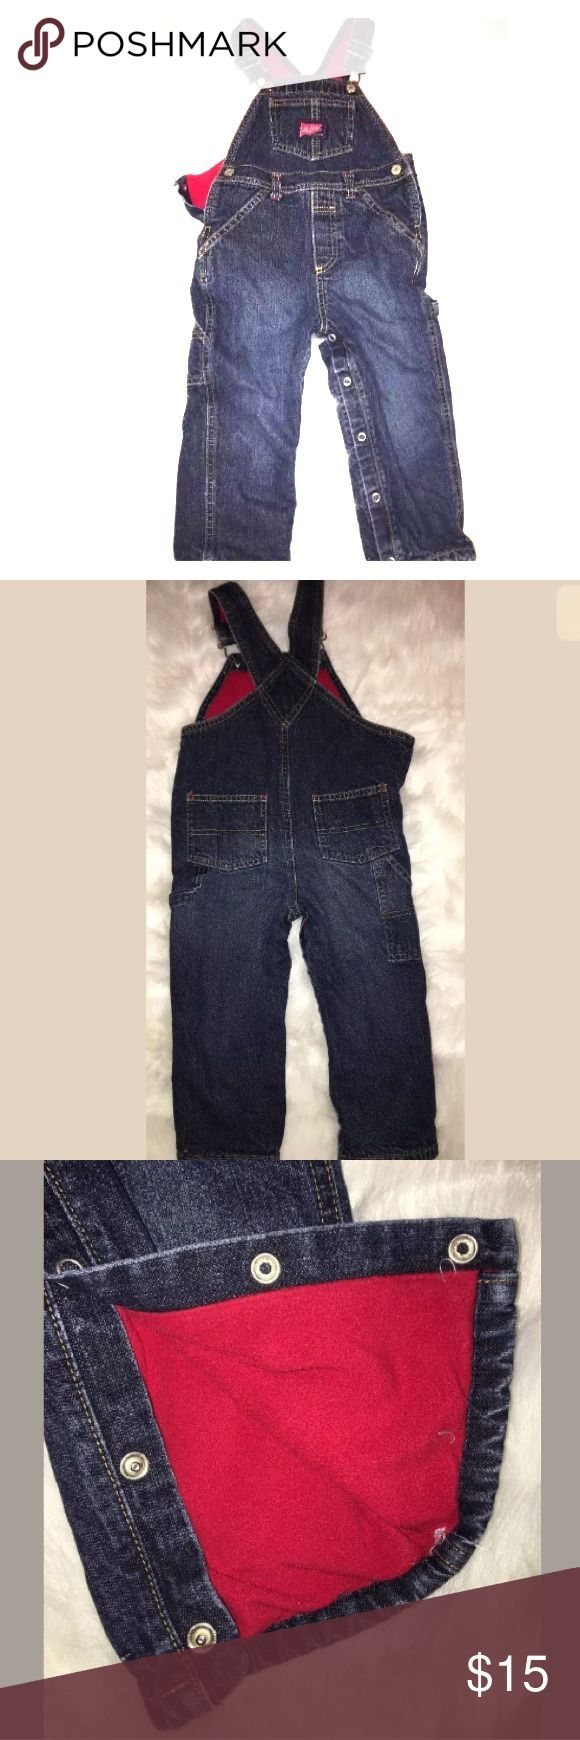 "Fleece Lined Denim Overalls 2T Toddler Old Navy Fleece Lined Denim Overalls Size 2T Toddler Boys Old Navy Baby Snap Up Jeans Red Fleece lining. Front pockets. Measures approx 11"" inseam, 8"" rise. Used but good condition. Old Navy Bottoms Overalls"